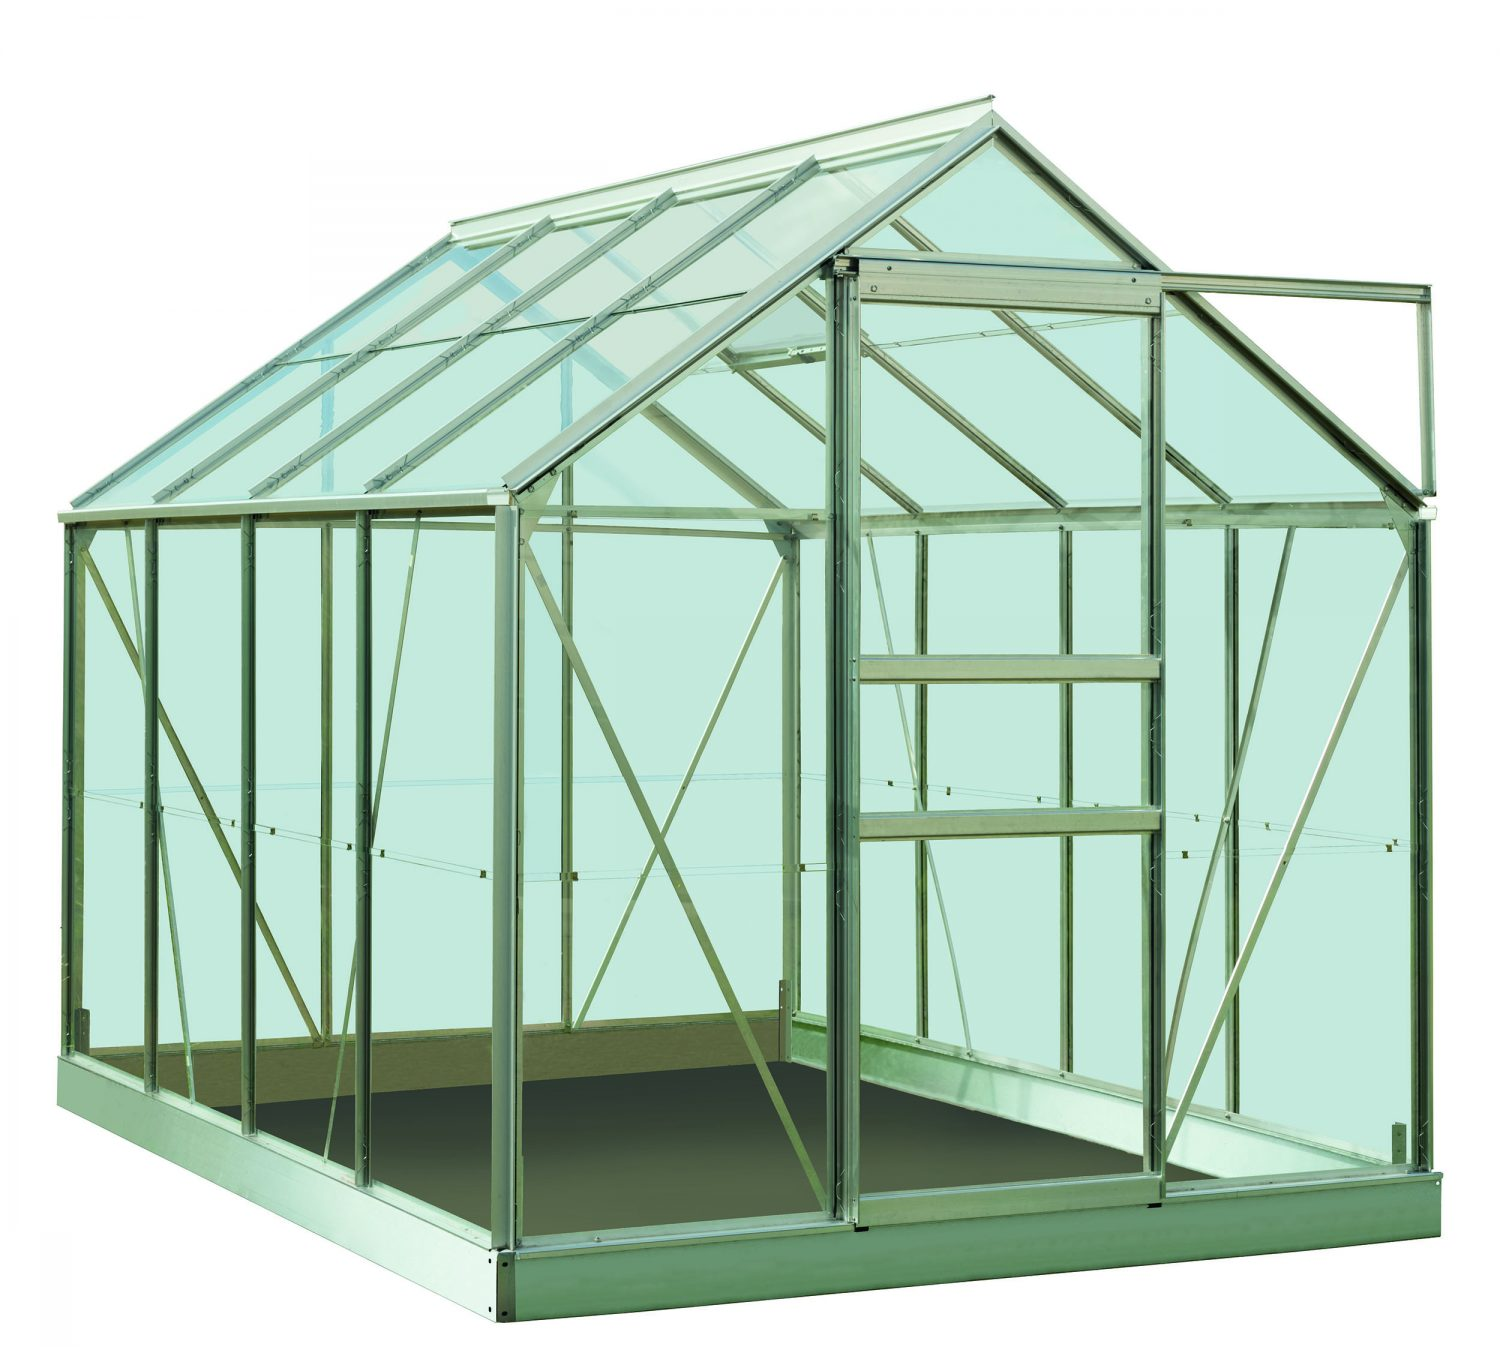 Introgrow Ivy | Aluminium | Green deals | New | Tuinbouwglas